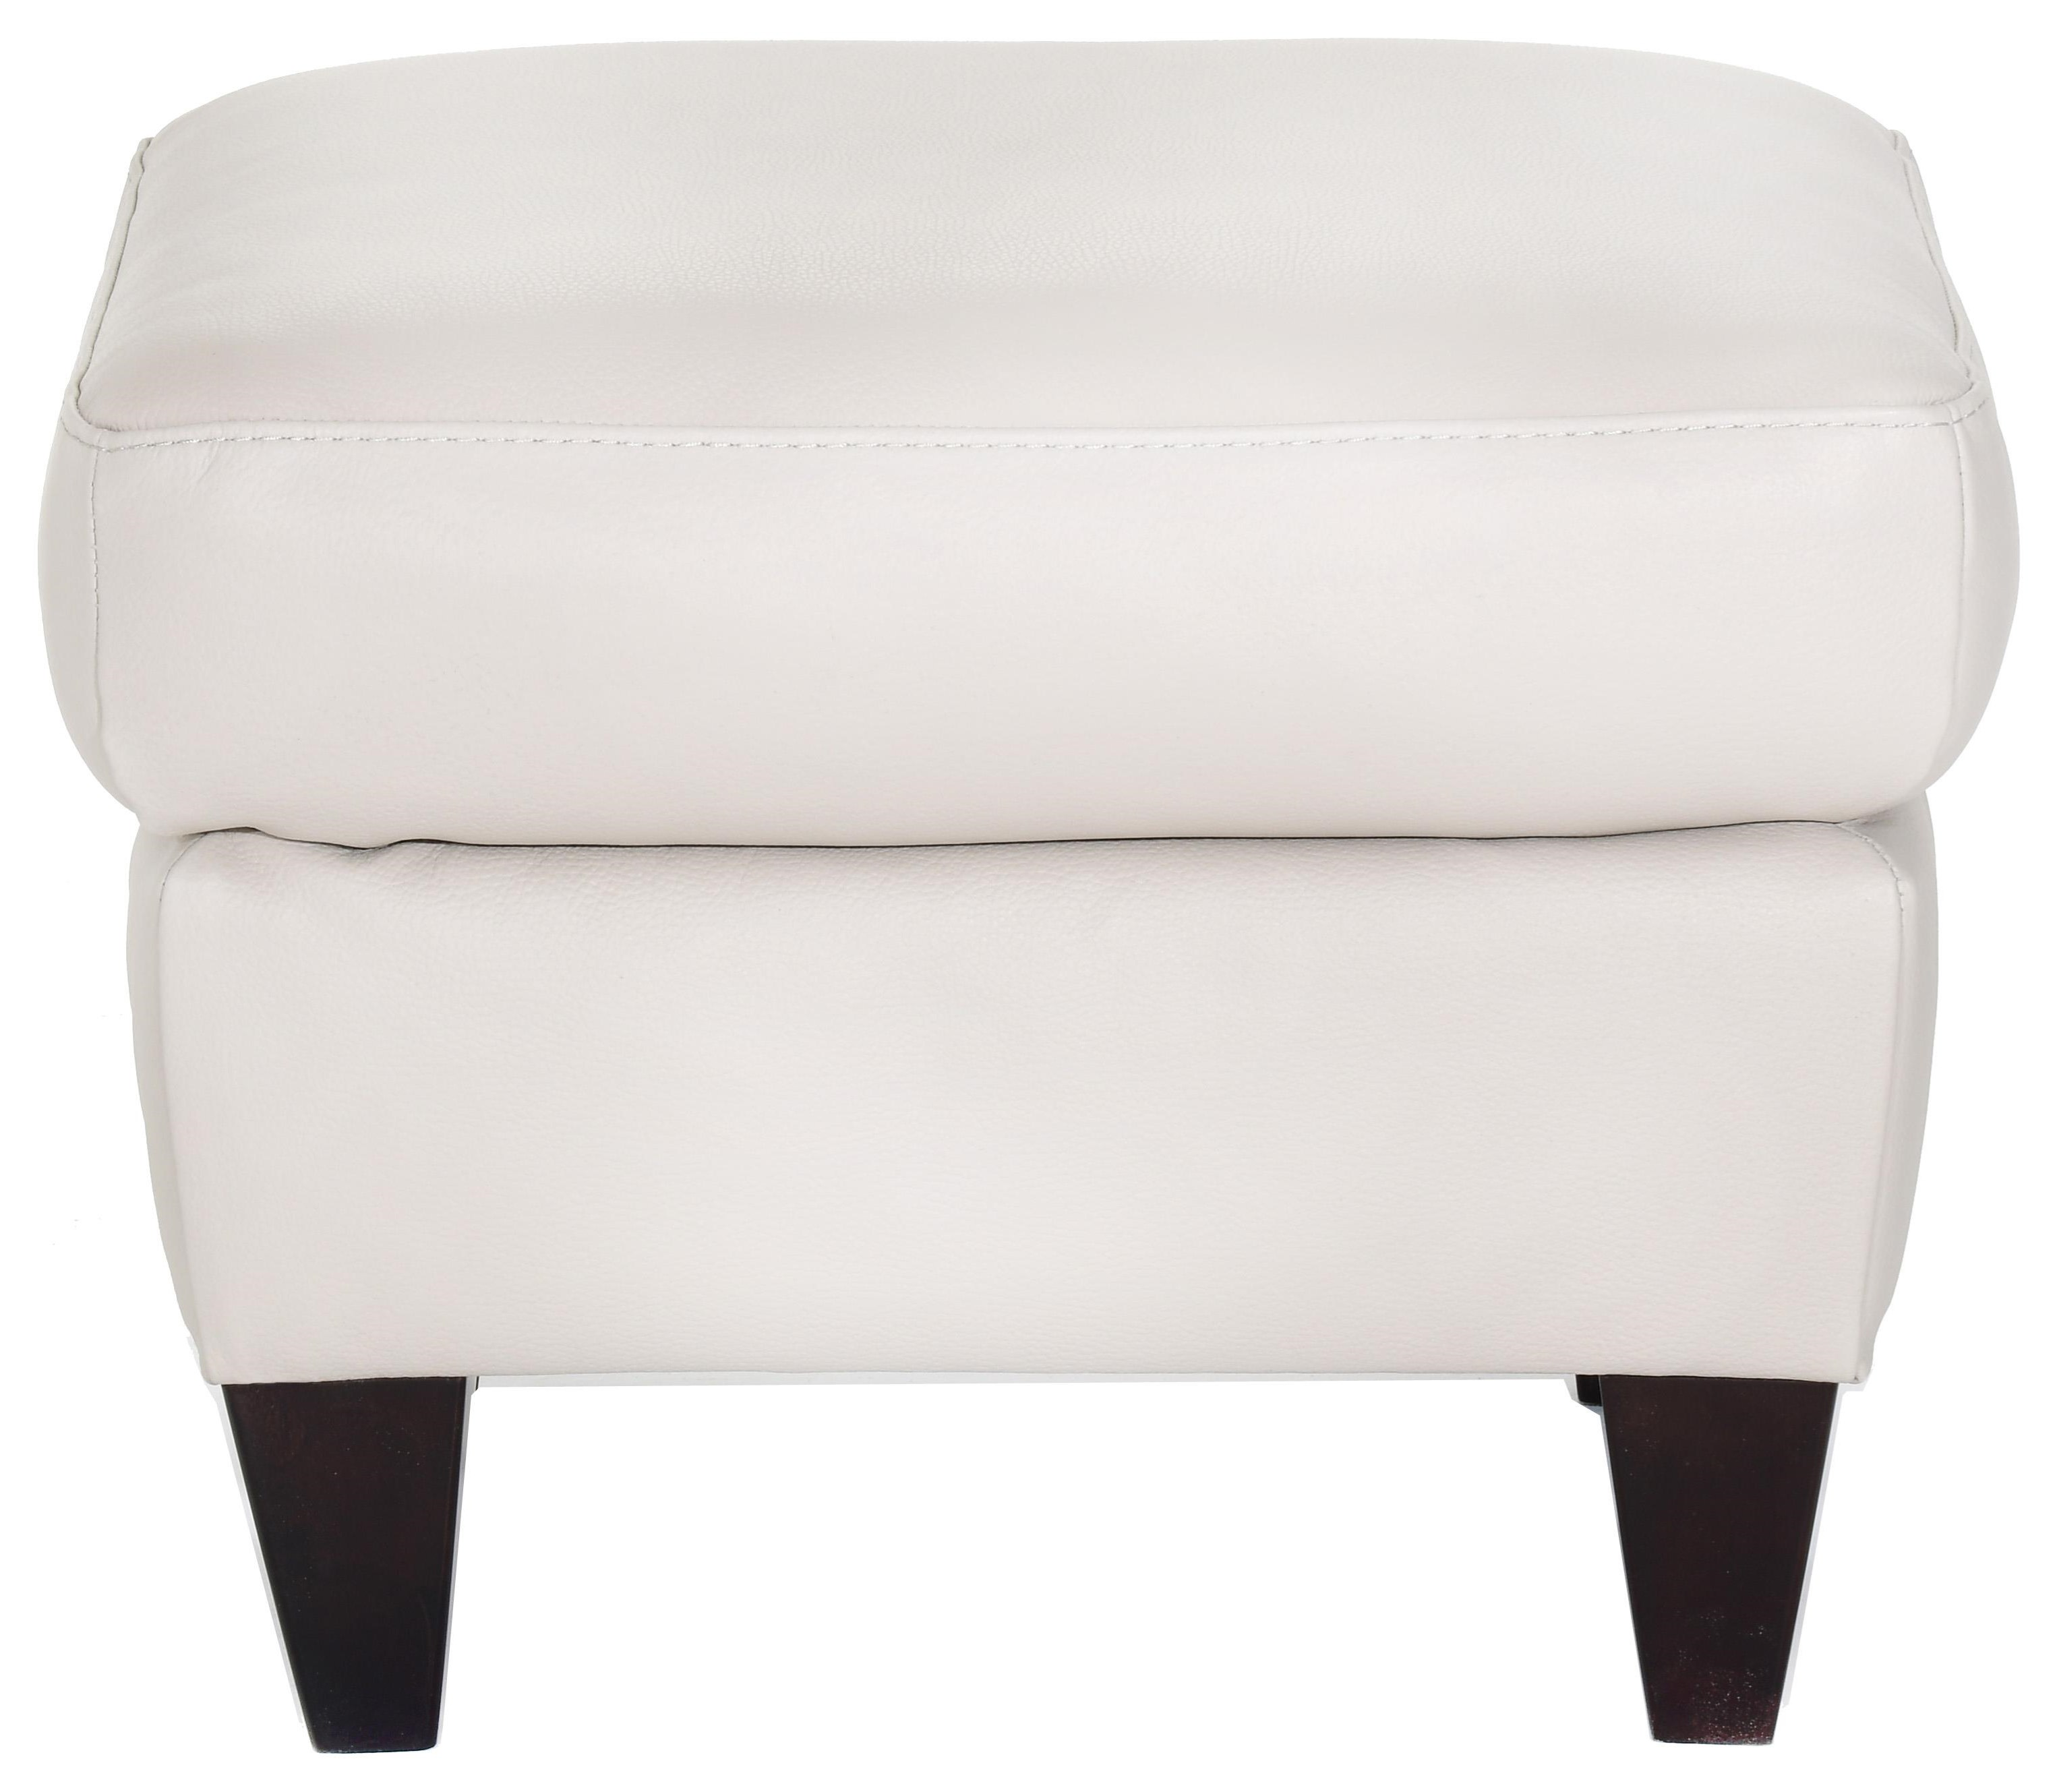 Damiano Ottoman by Natuzzi Editions at Baer's Furniture